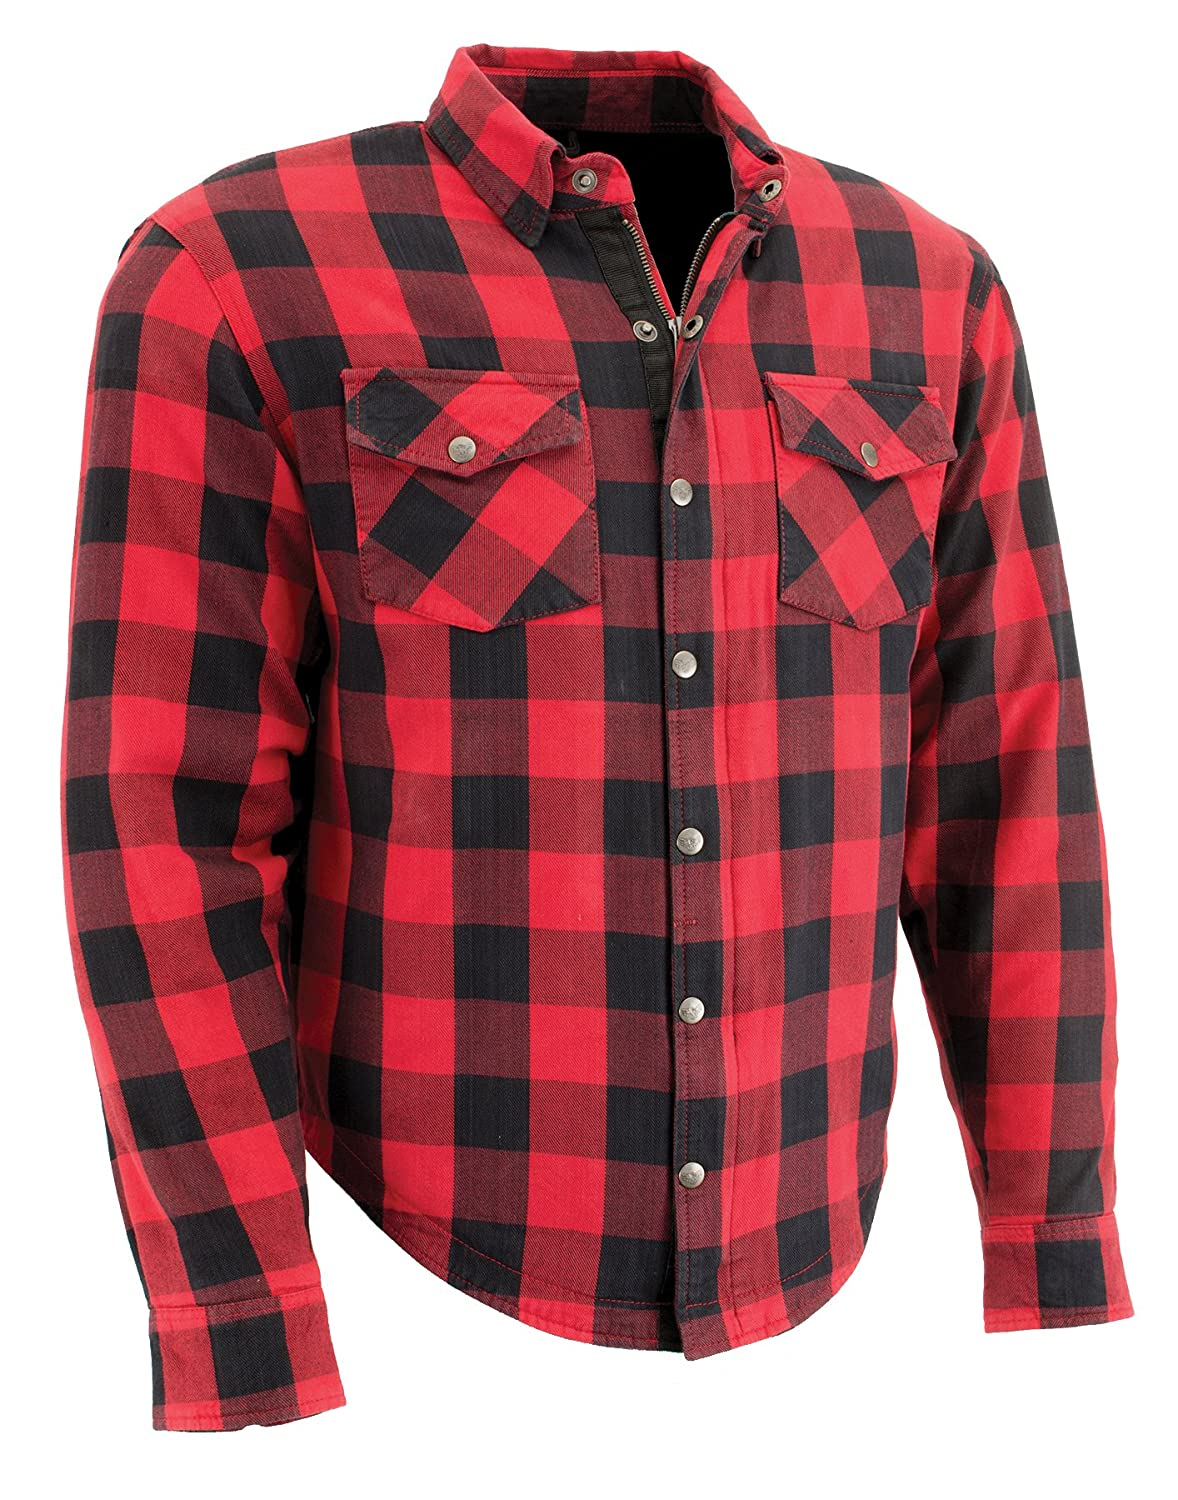 Milwaukee Performance MPM1631-BLK/RED-2X Men's Checkered Flannel Biker Shirt with Aramid Black/Red, 2X